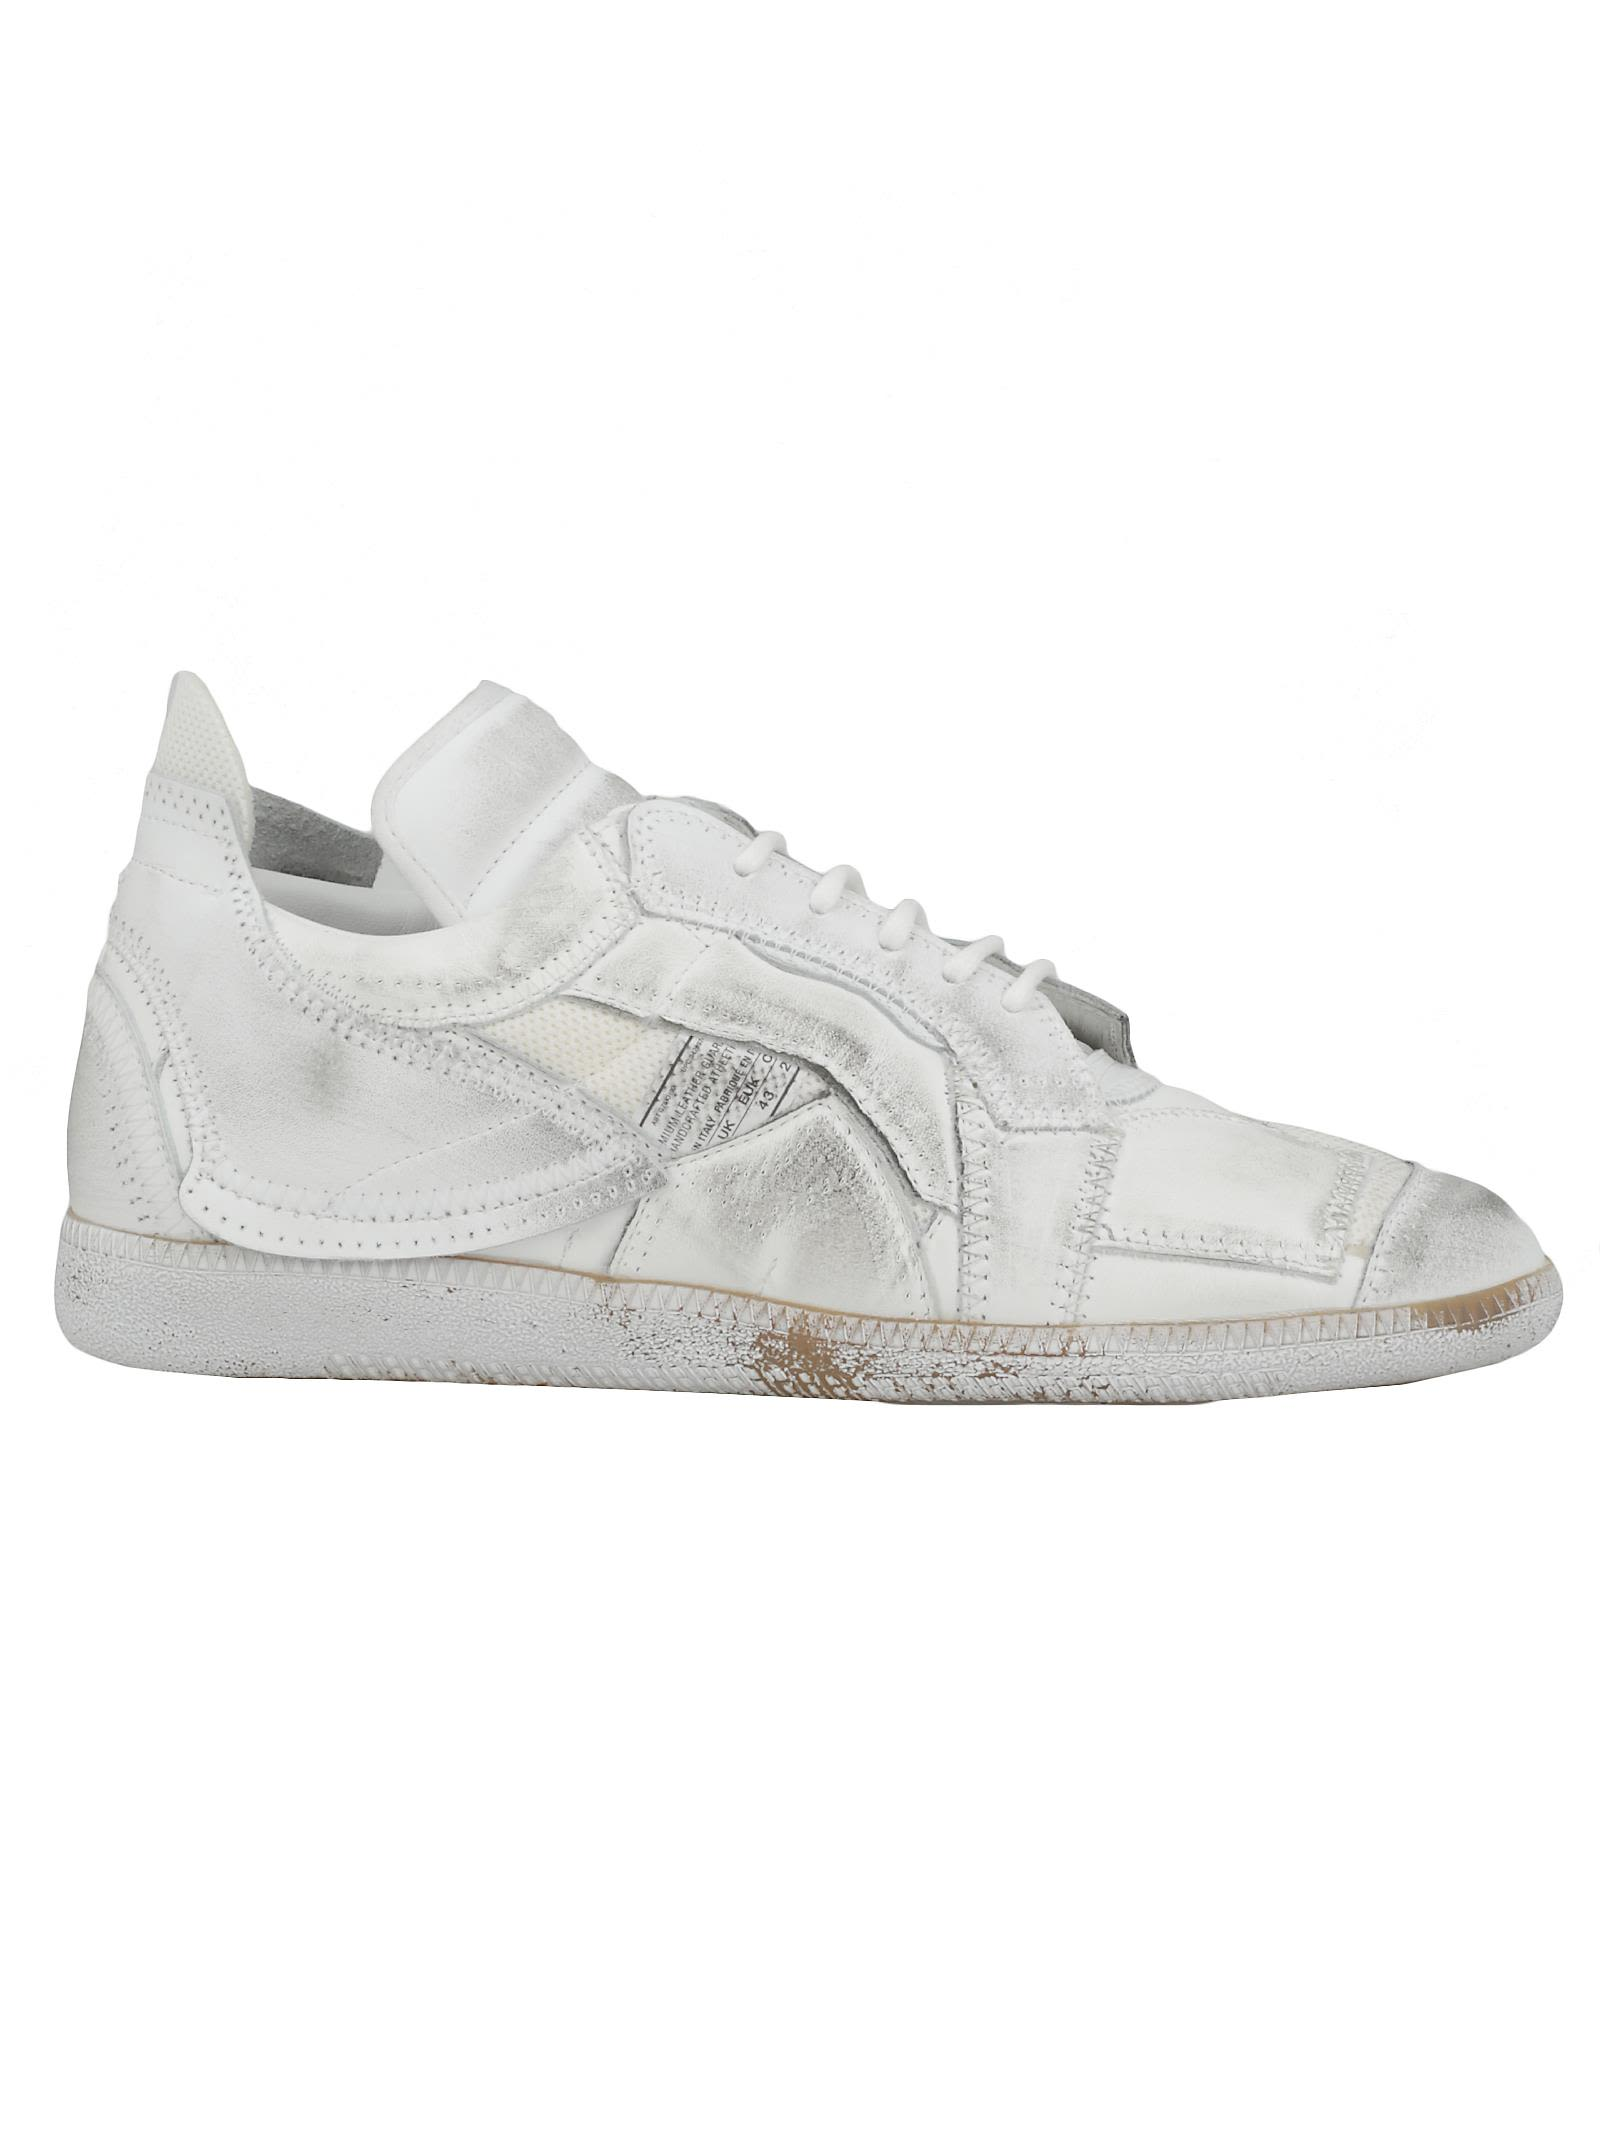 Maison Margiela Leather Sneaker